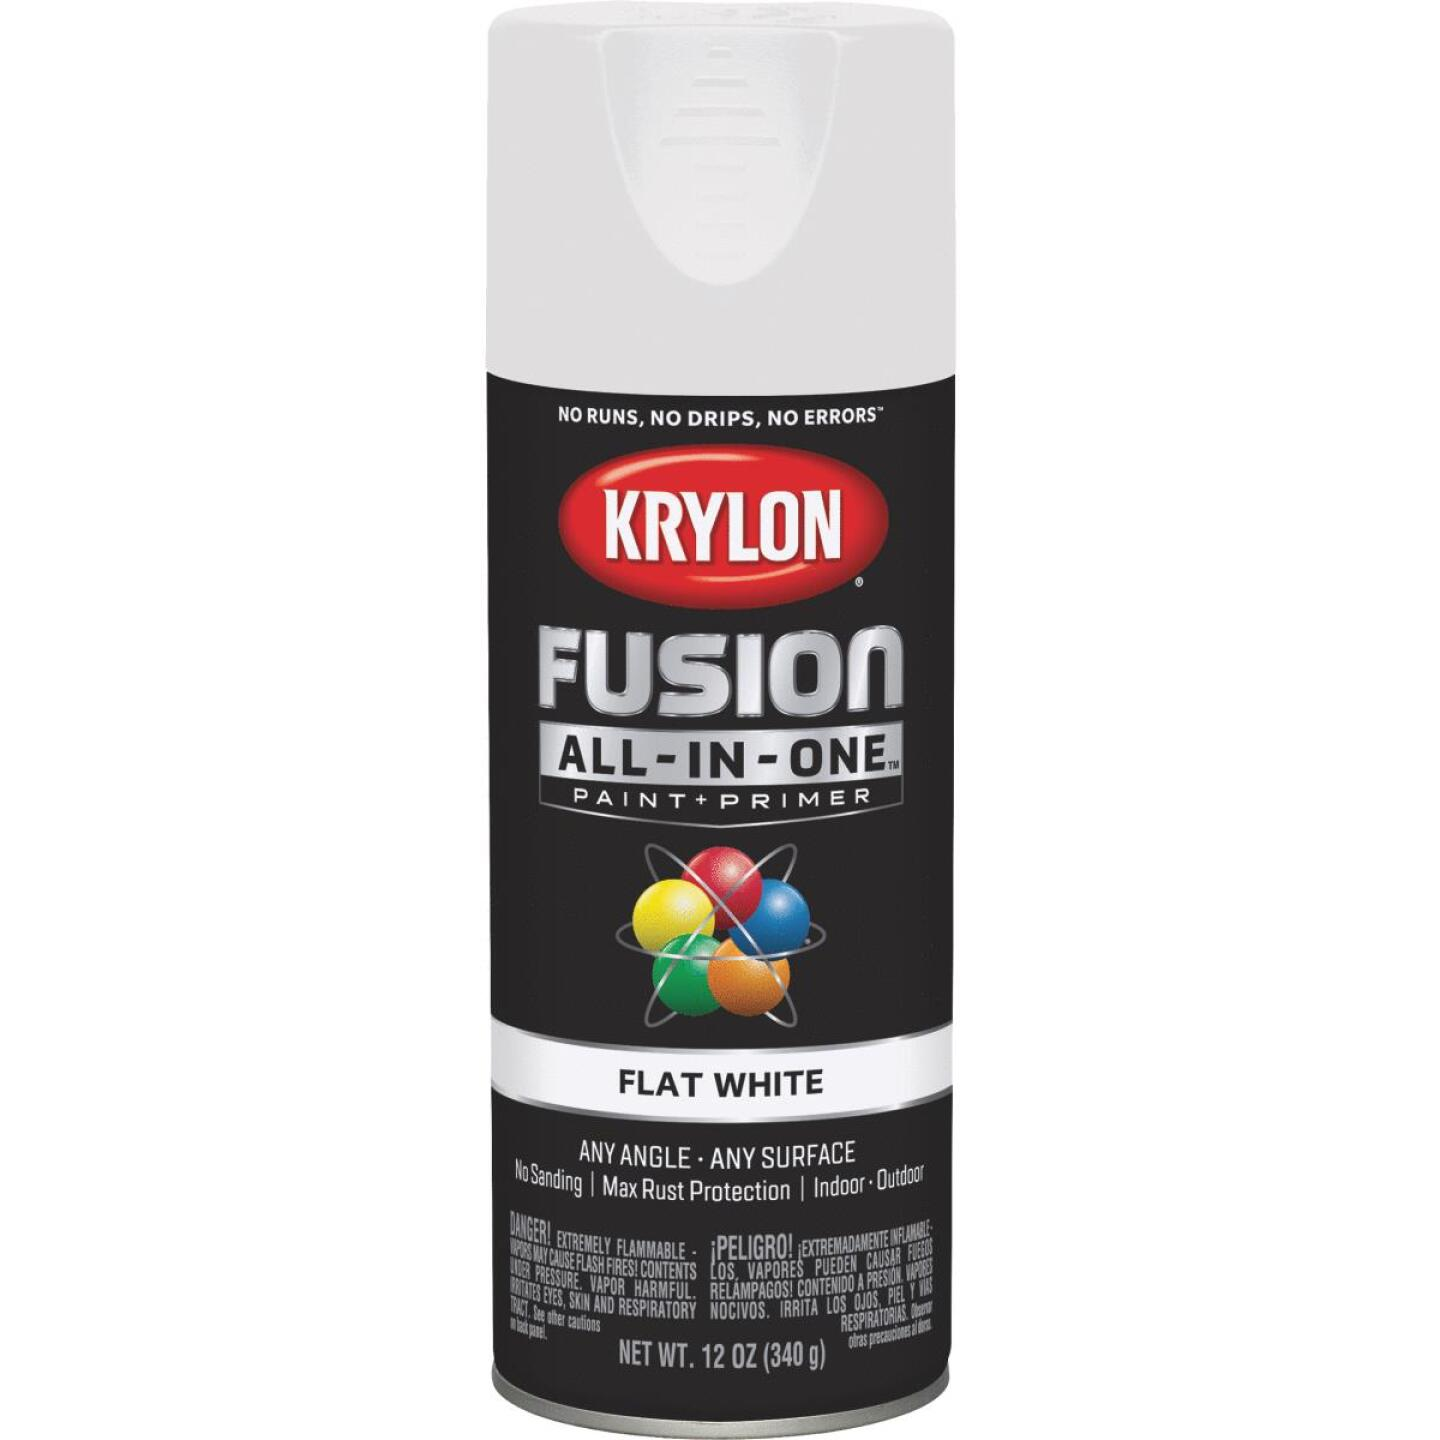 Krylon Fusion All-In-One Flat Spray Paint & Primer, White Image 1